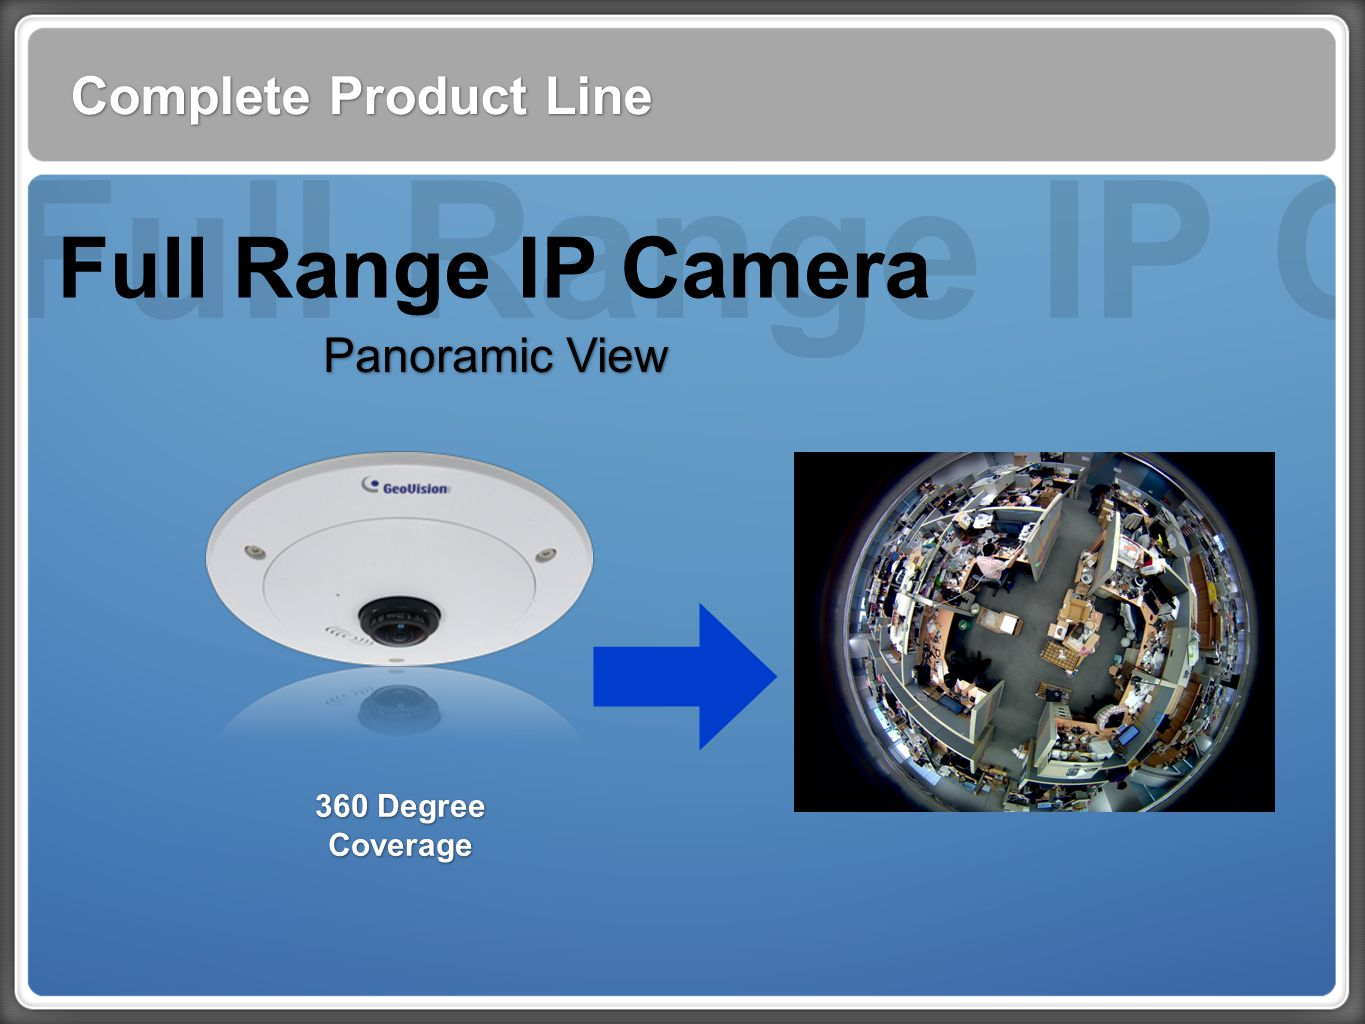 Full Range IP Cam Full Range IP Camera Complete Product Line